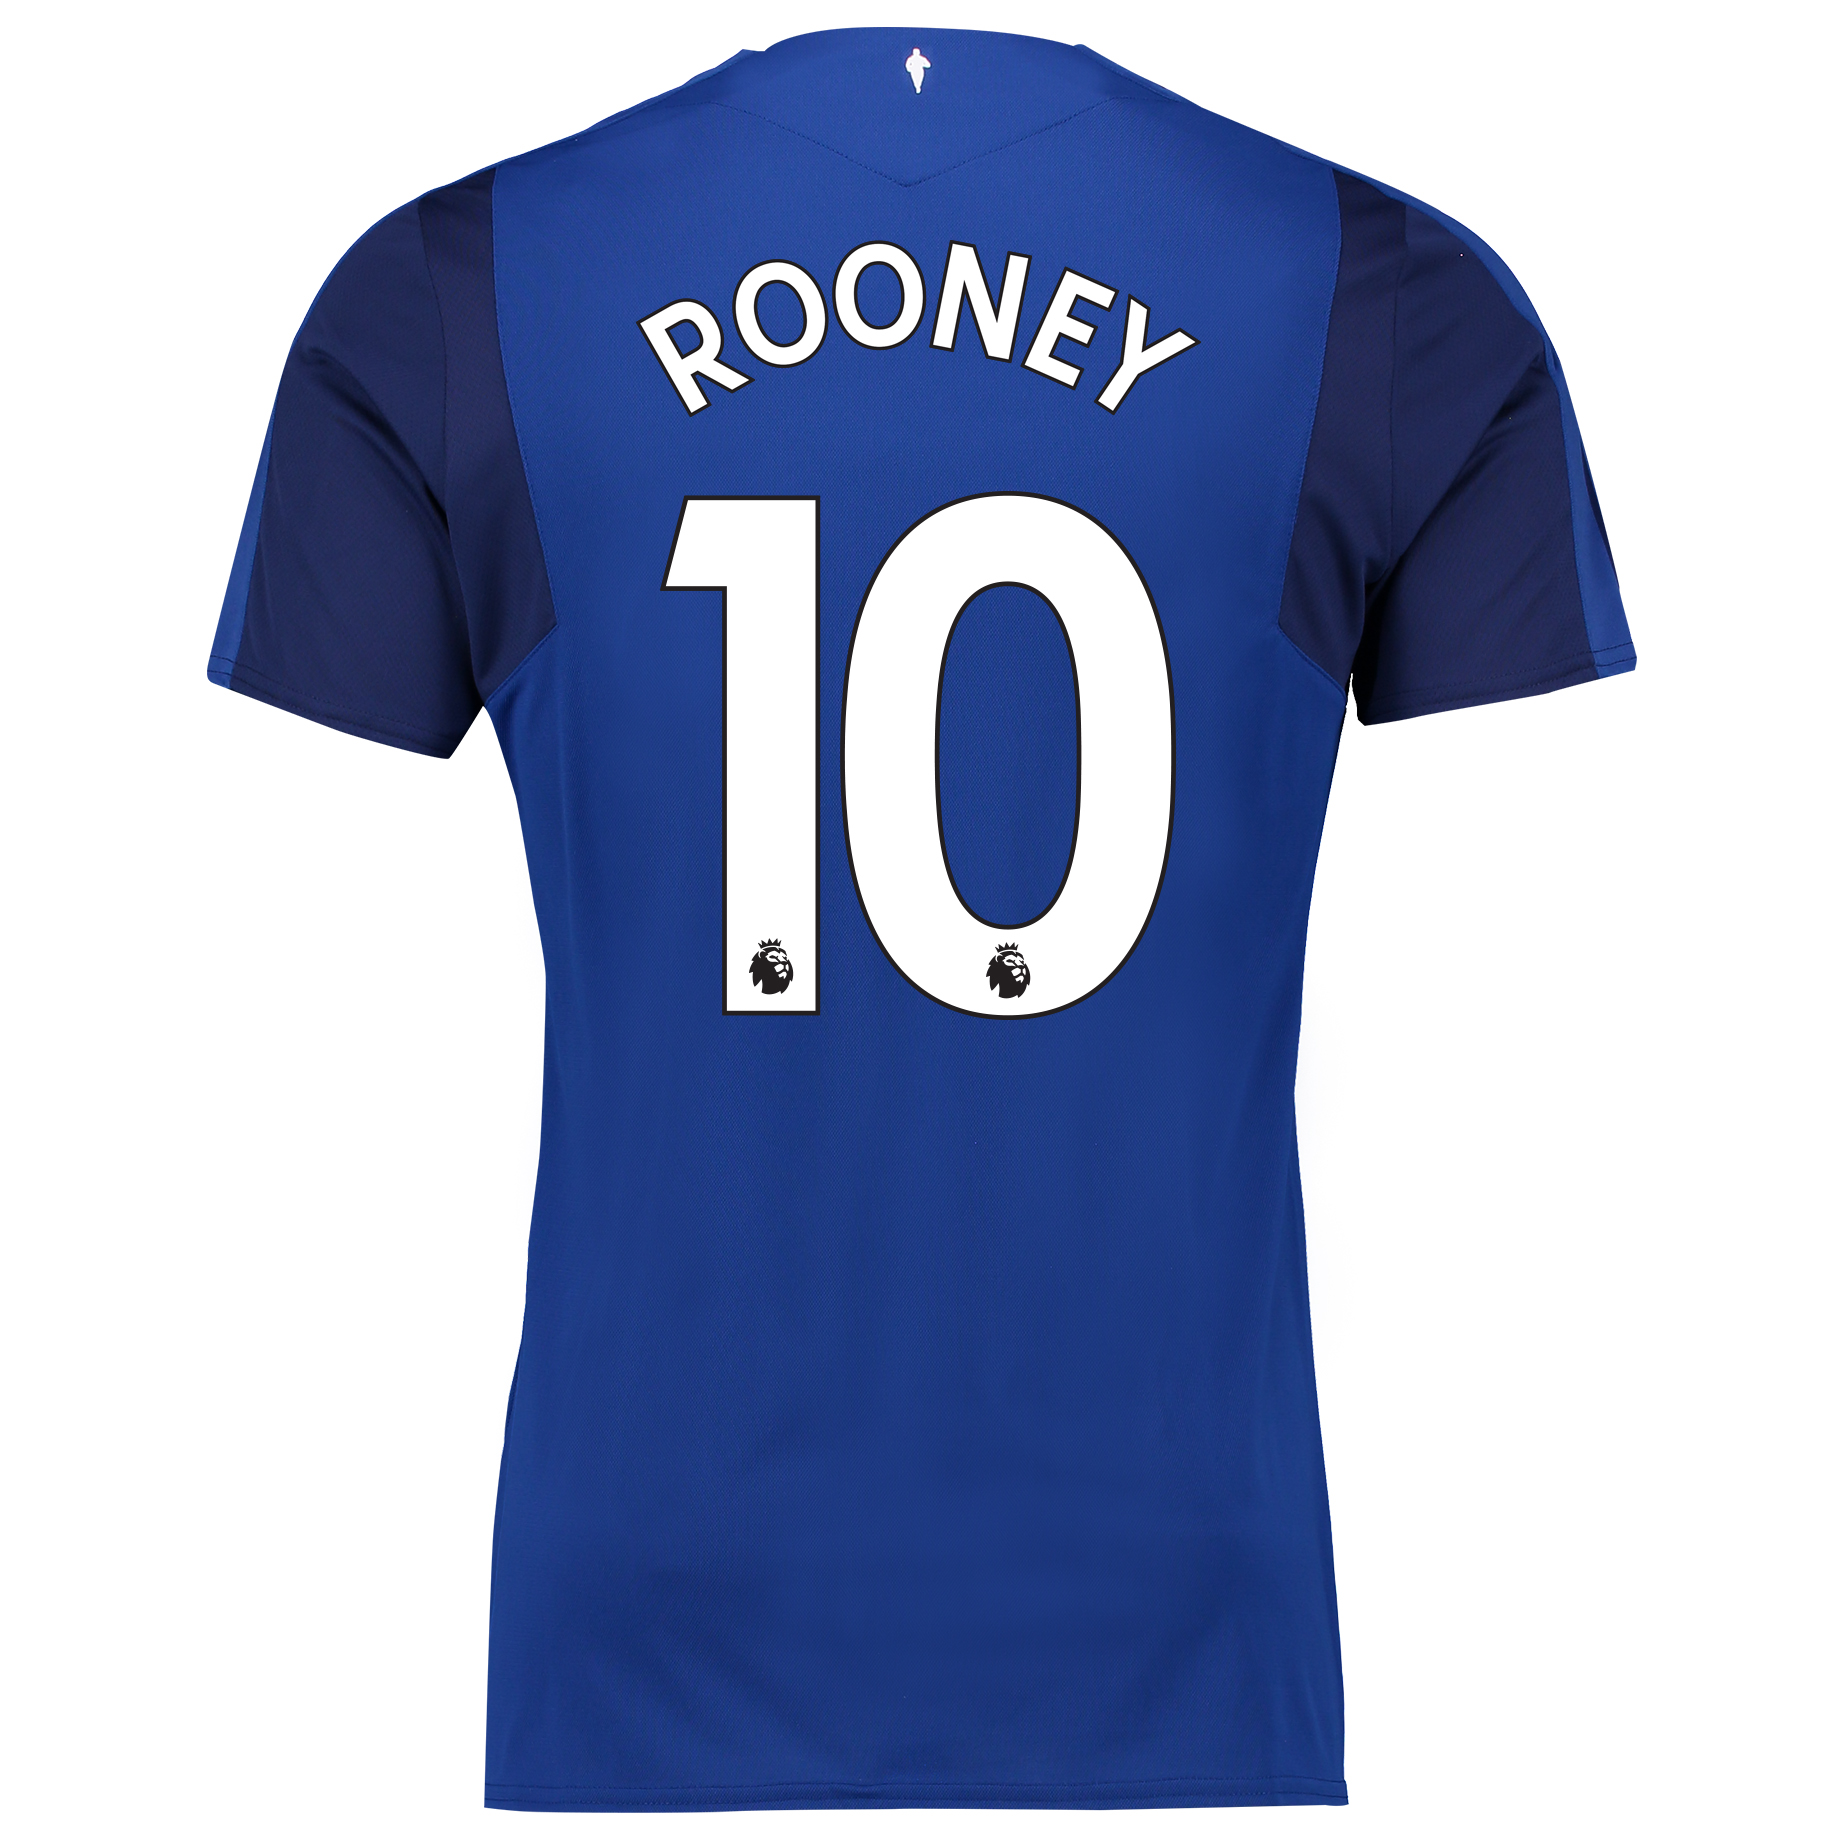 Everton Home Shirt 2017/18 - Junior with Rooney 10 printing